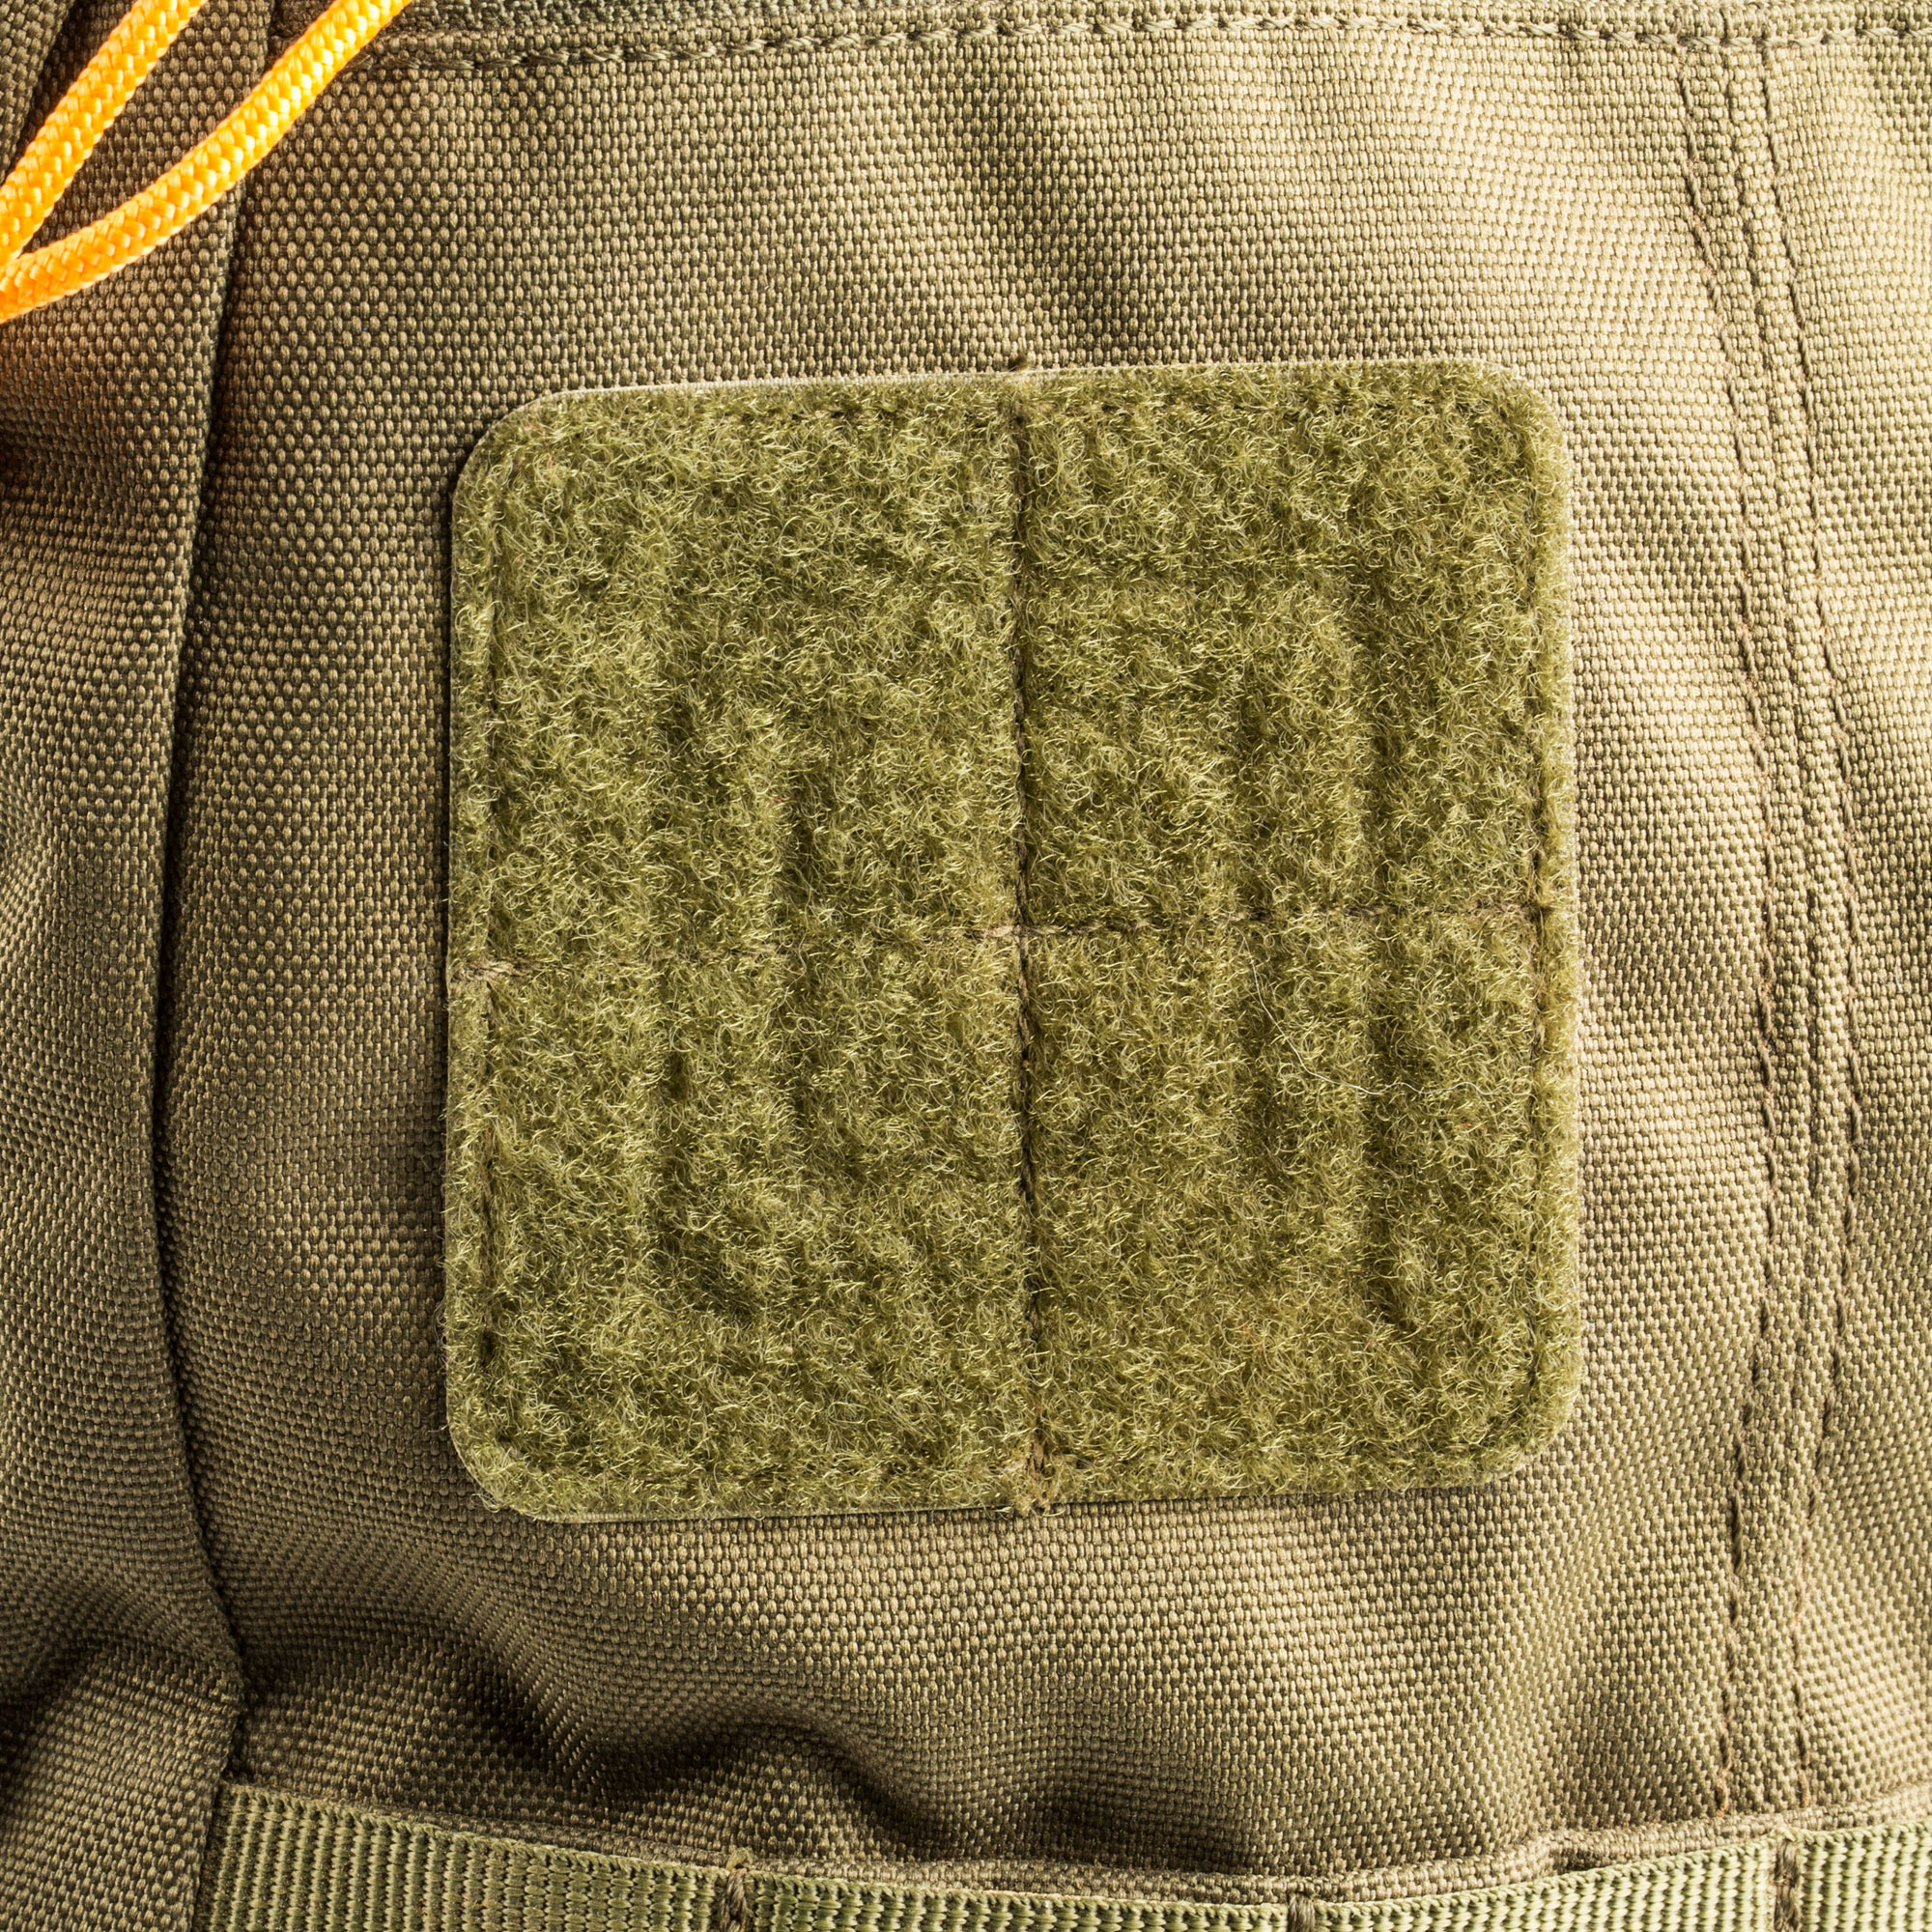 5-11-Tactical-Rapid-Origin-Pack-25L-Backpack-MOLLE-Hydration-Pocket-Style-56355 thumbnail 26